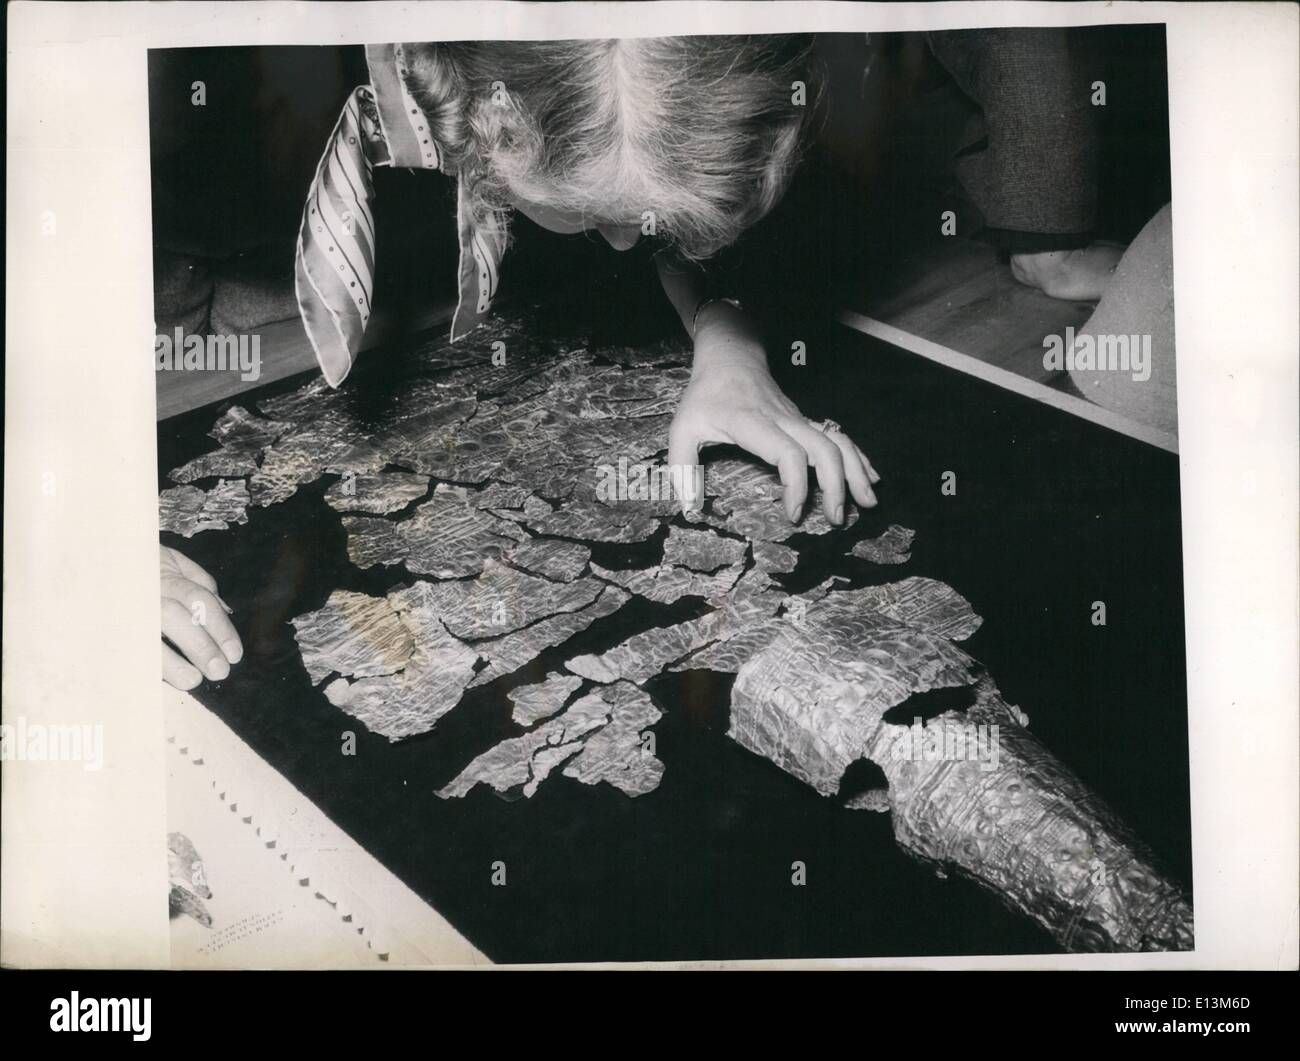 Mar. 22, 2012 - According to the opinion of experts - of the German National Museum in Nuremberg the so-called ''Nuremberg Stock Photo